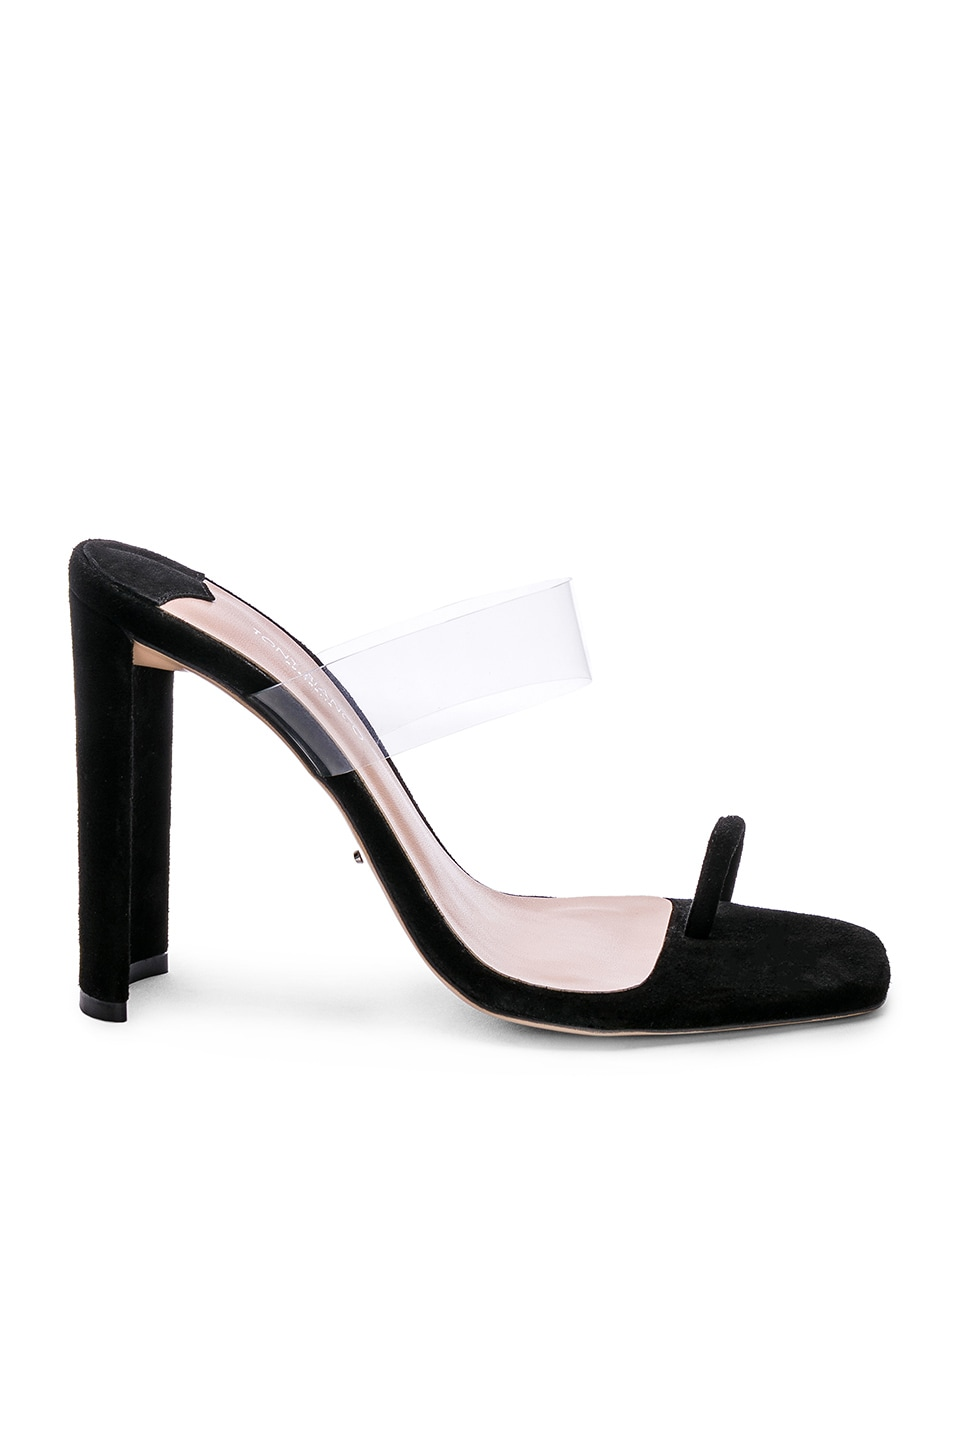 Tony Bianco x REVOLVE Sapphire Heel in Black Suede & Clear Vynalite